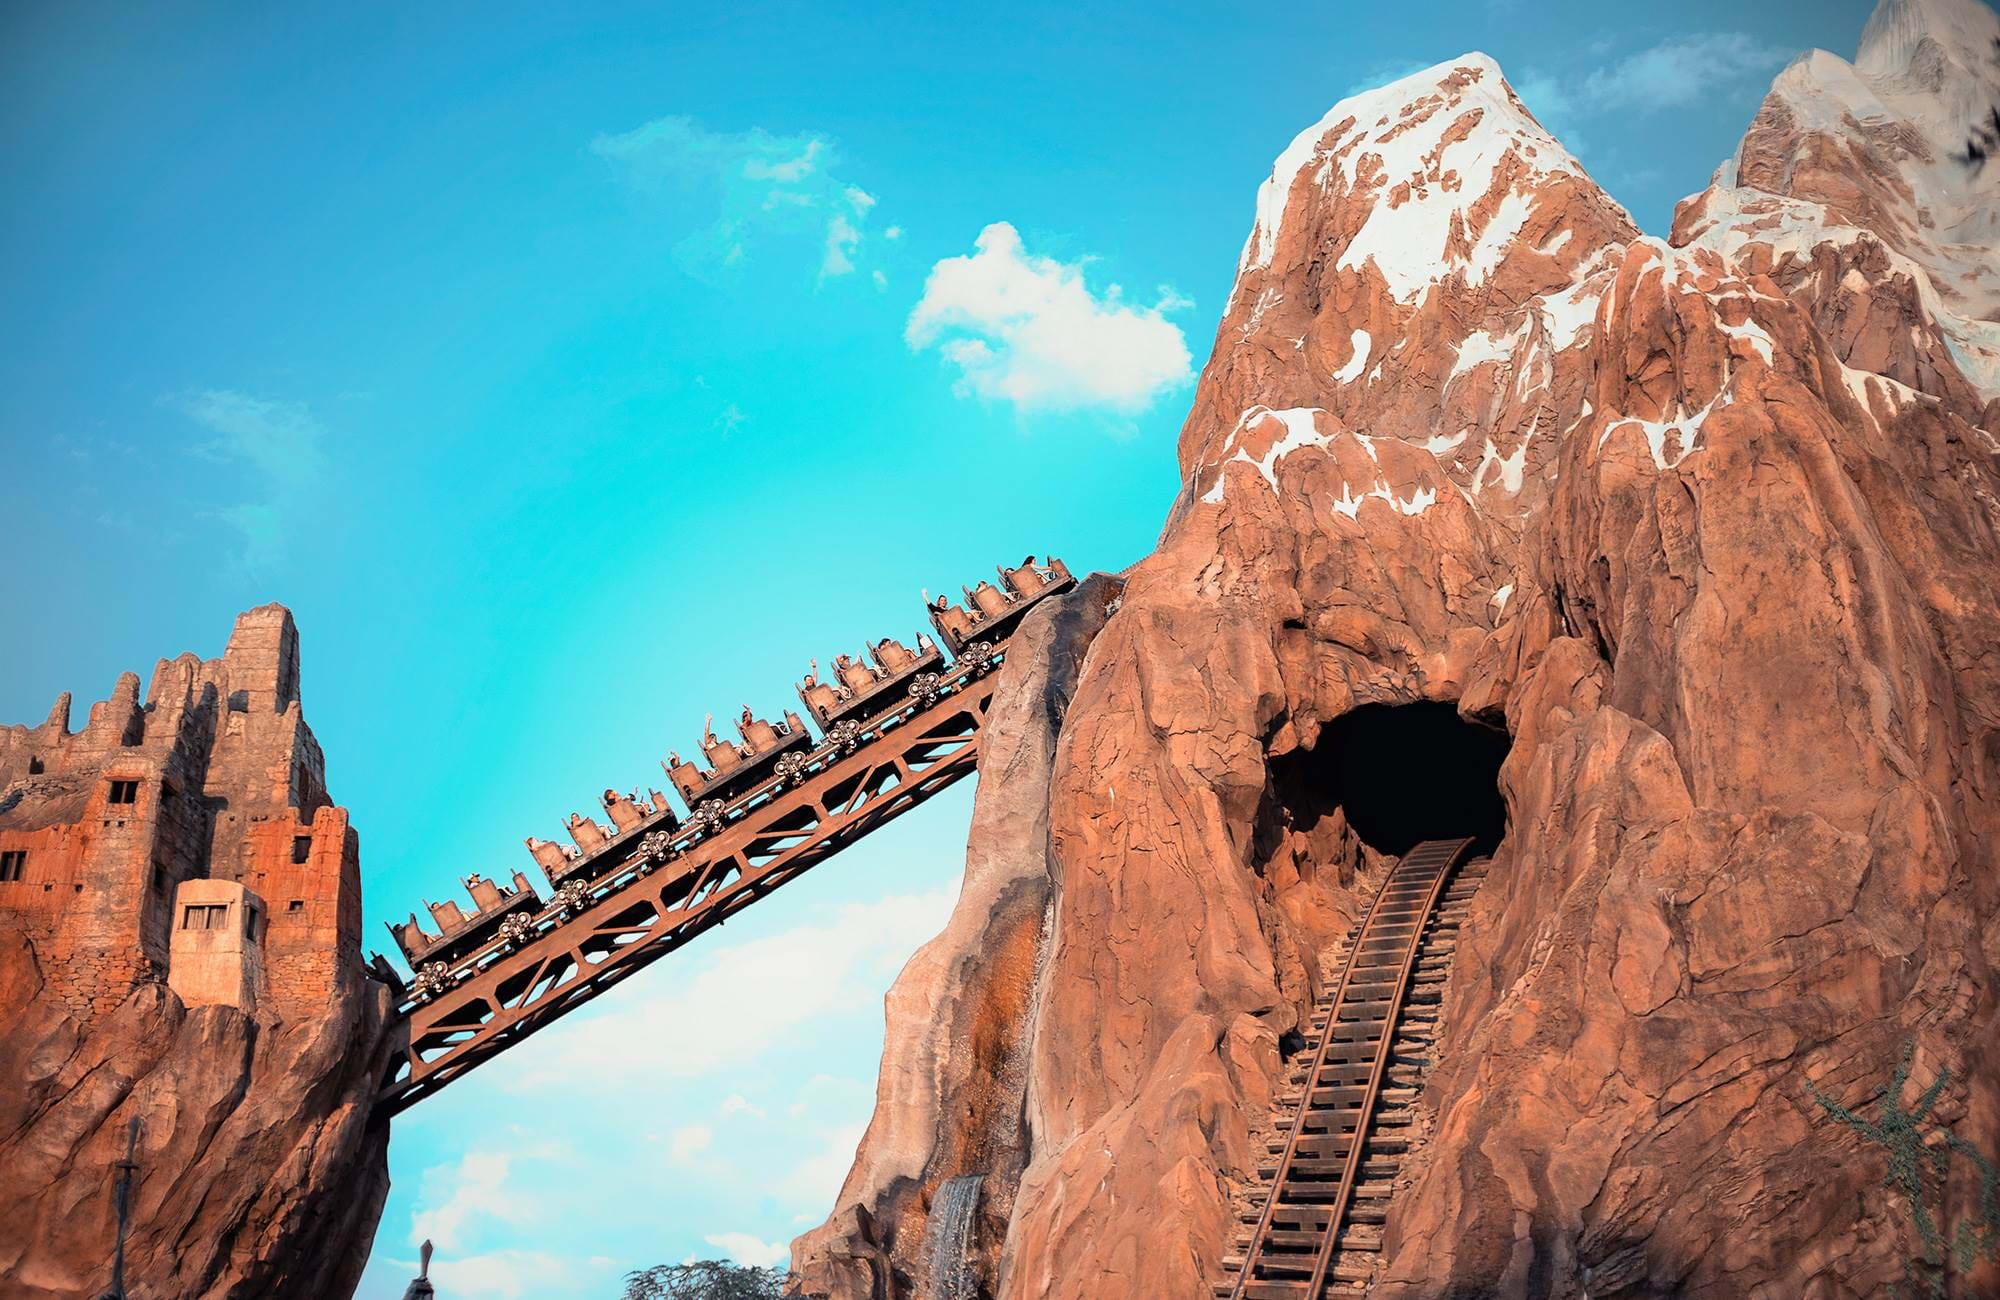 florida-orlando-disney-roller-coaster-expedition-everest-cover